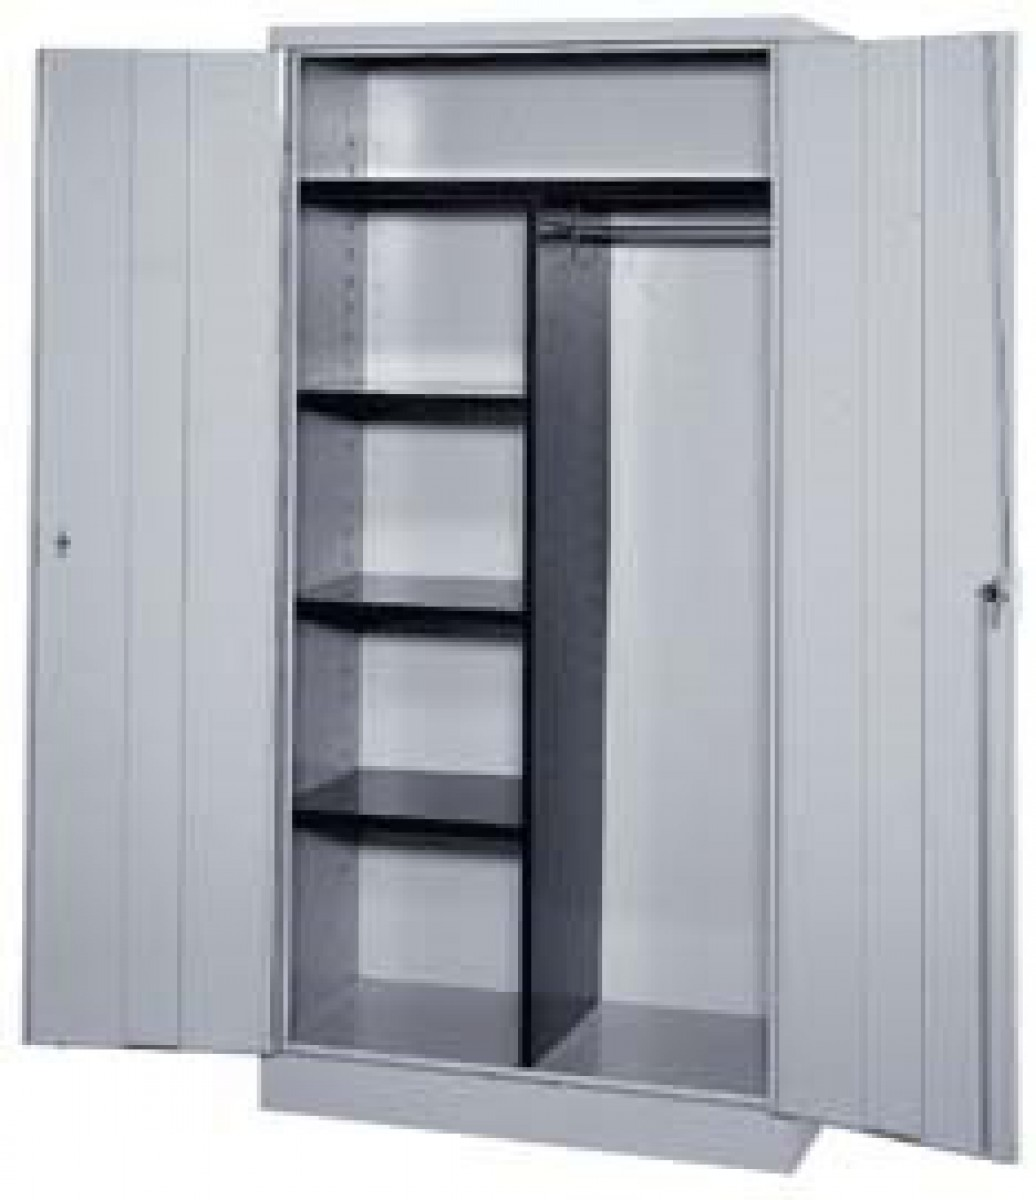 Storage Cabinets Steel Cabinets Metal Cabinet With Plastic Bins Many Cabinet Sizes And Colors